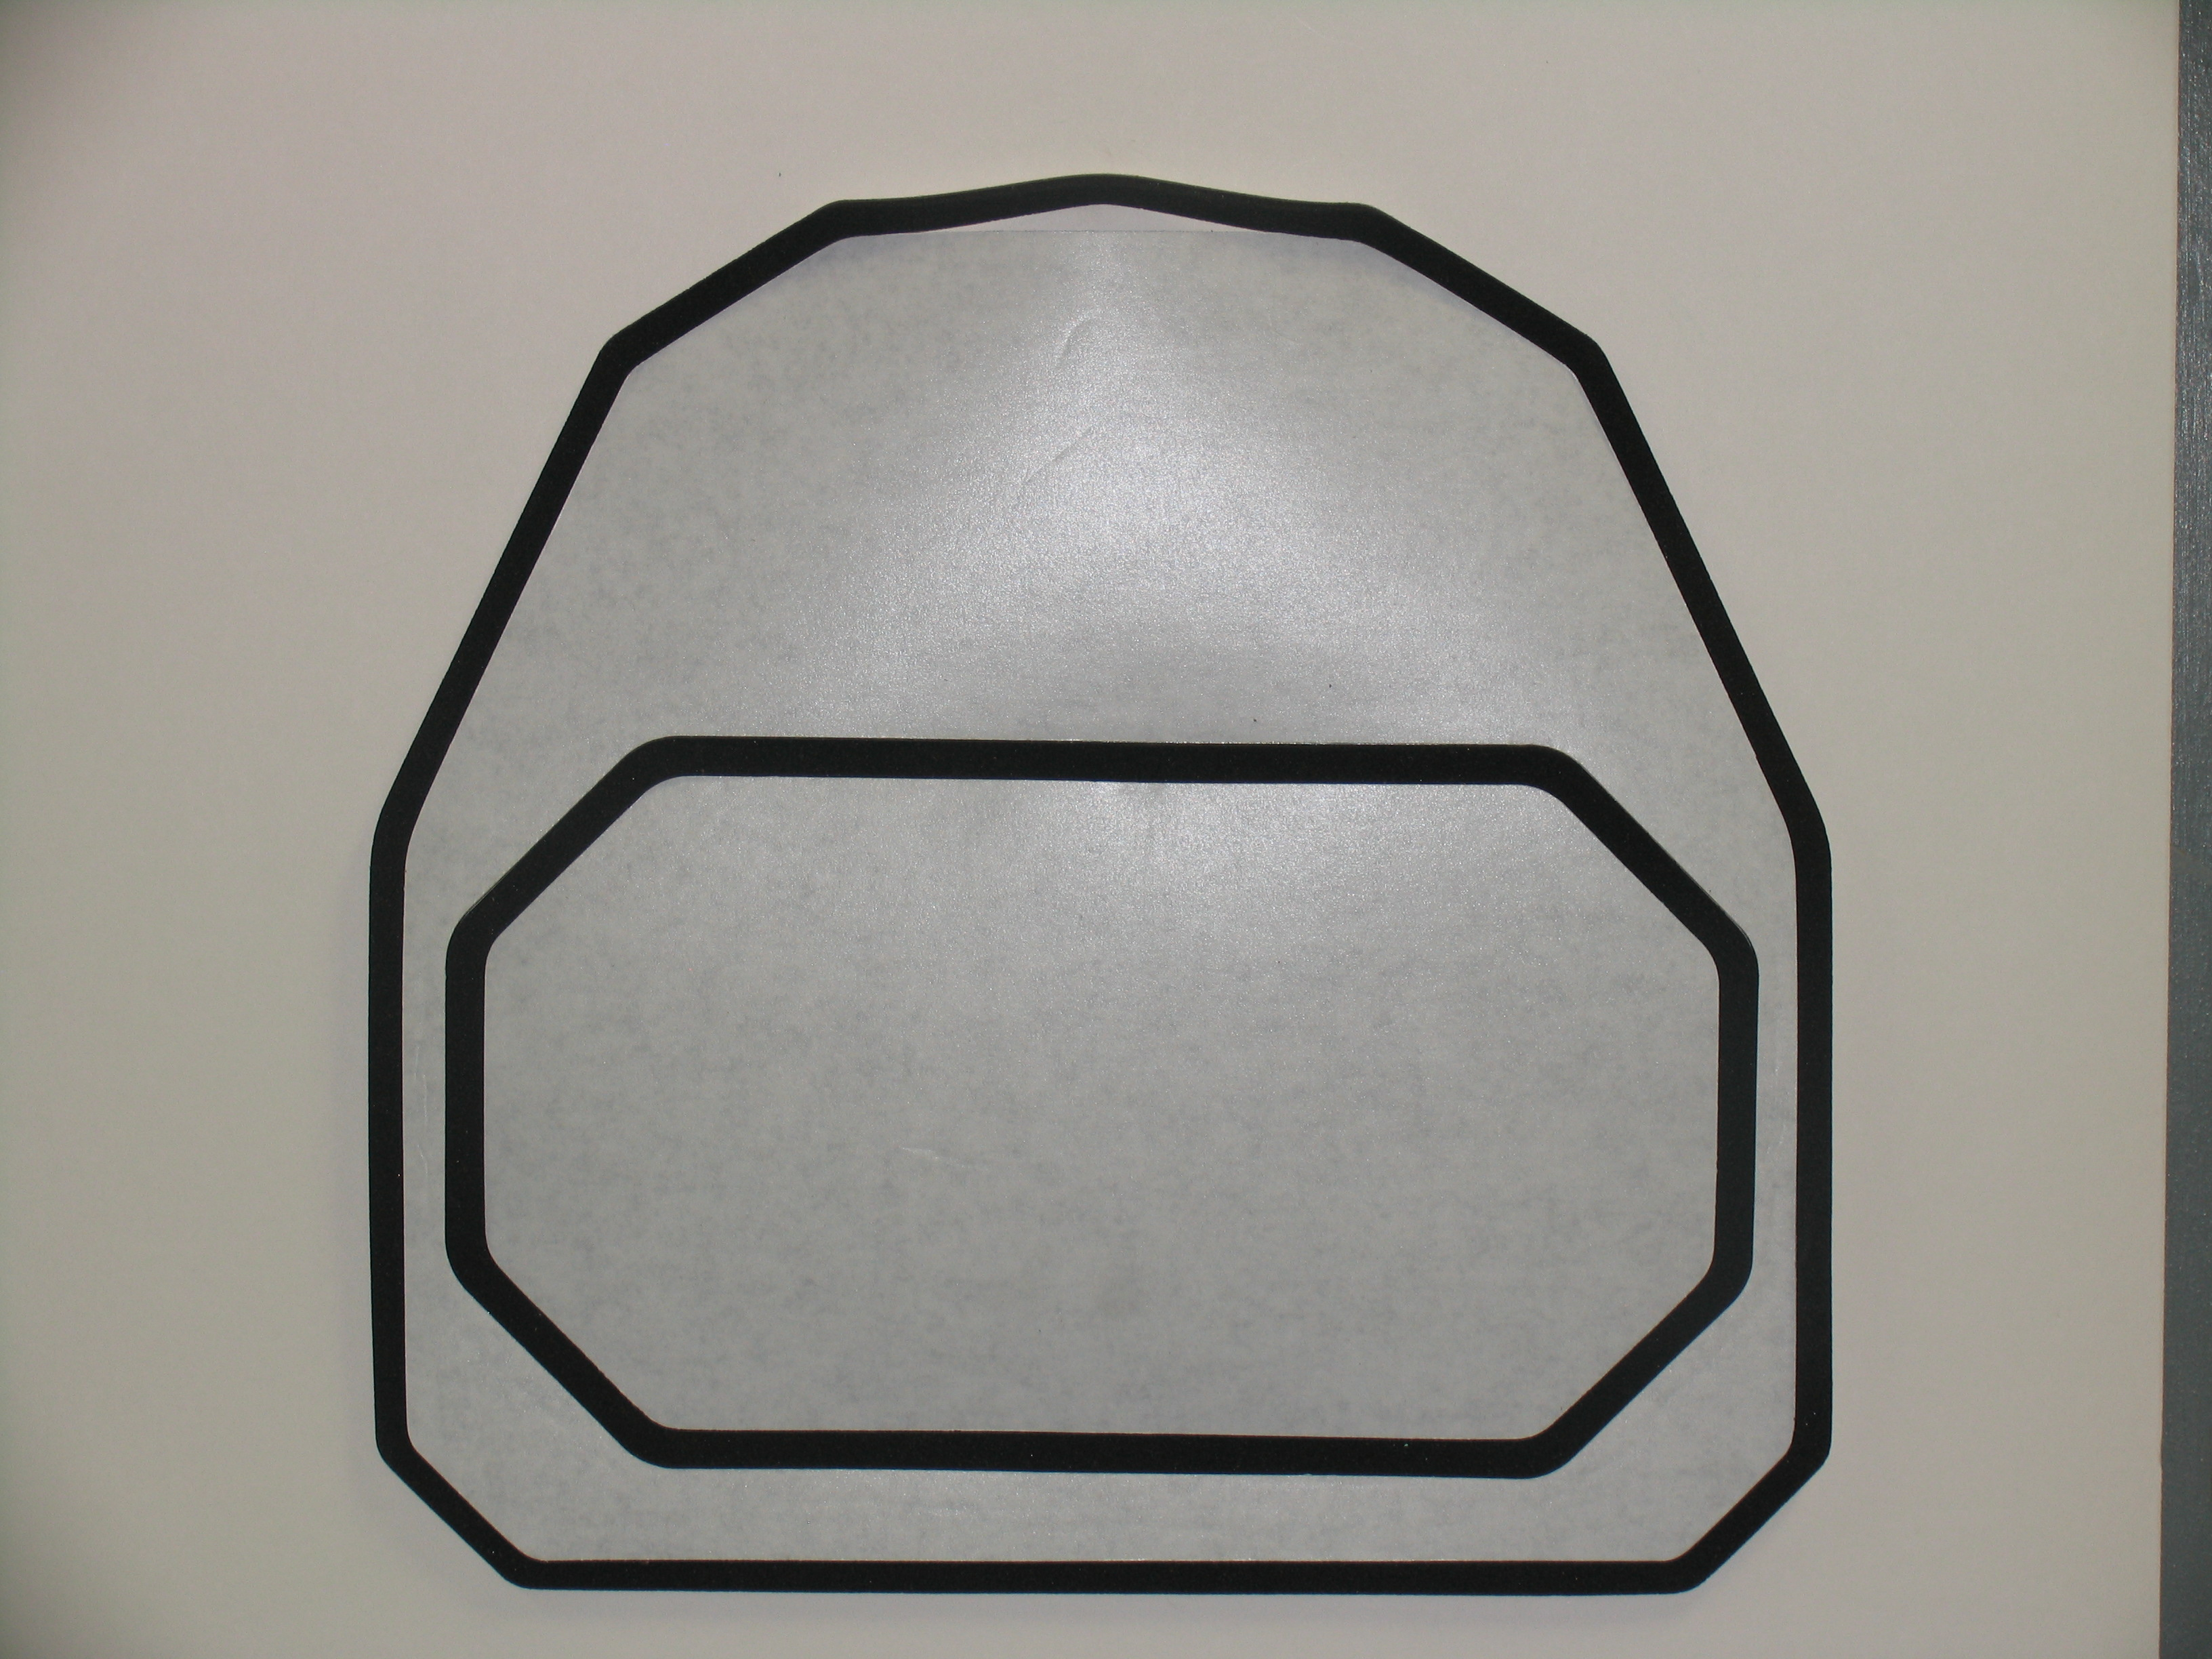 GKT-6346 Gasket; R/N GKT-989 and GKT-987 (Made in the USA)